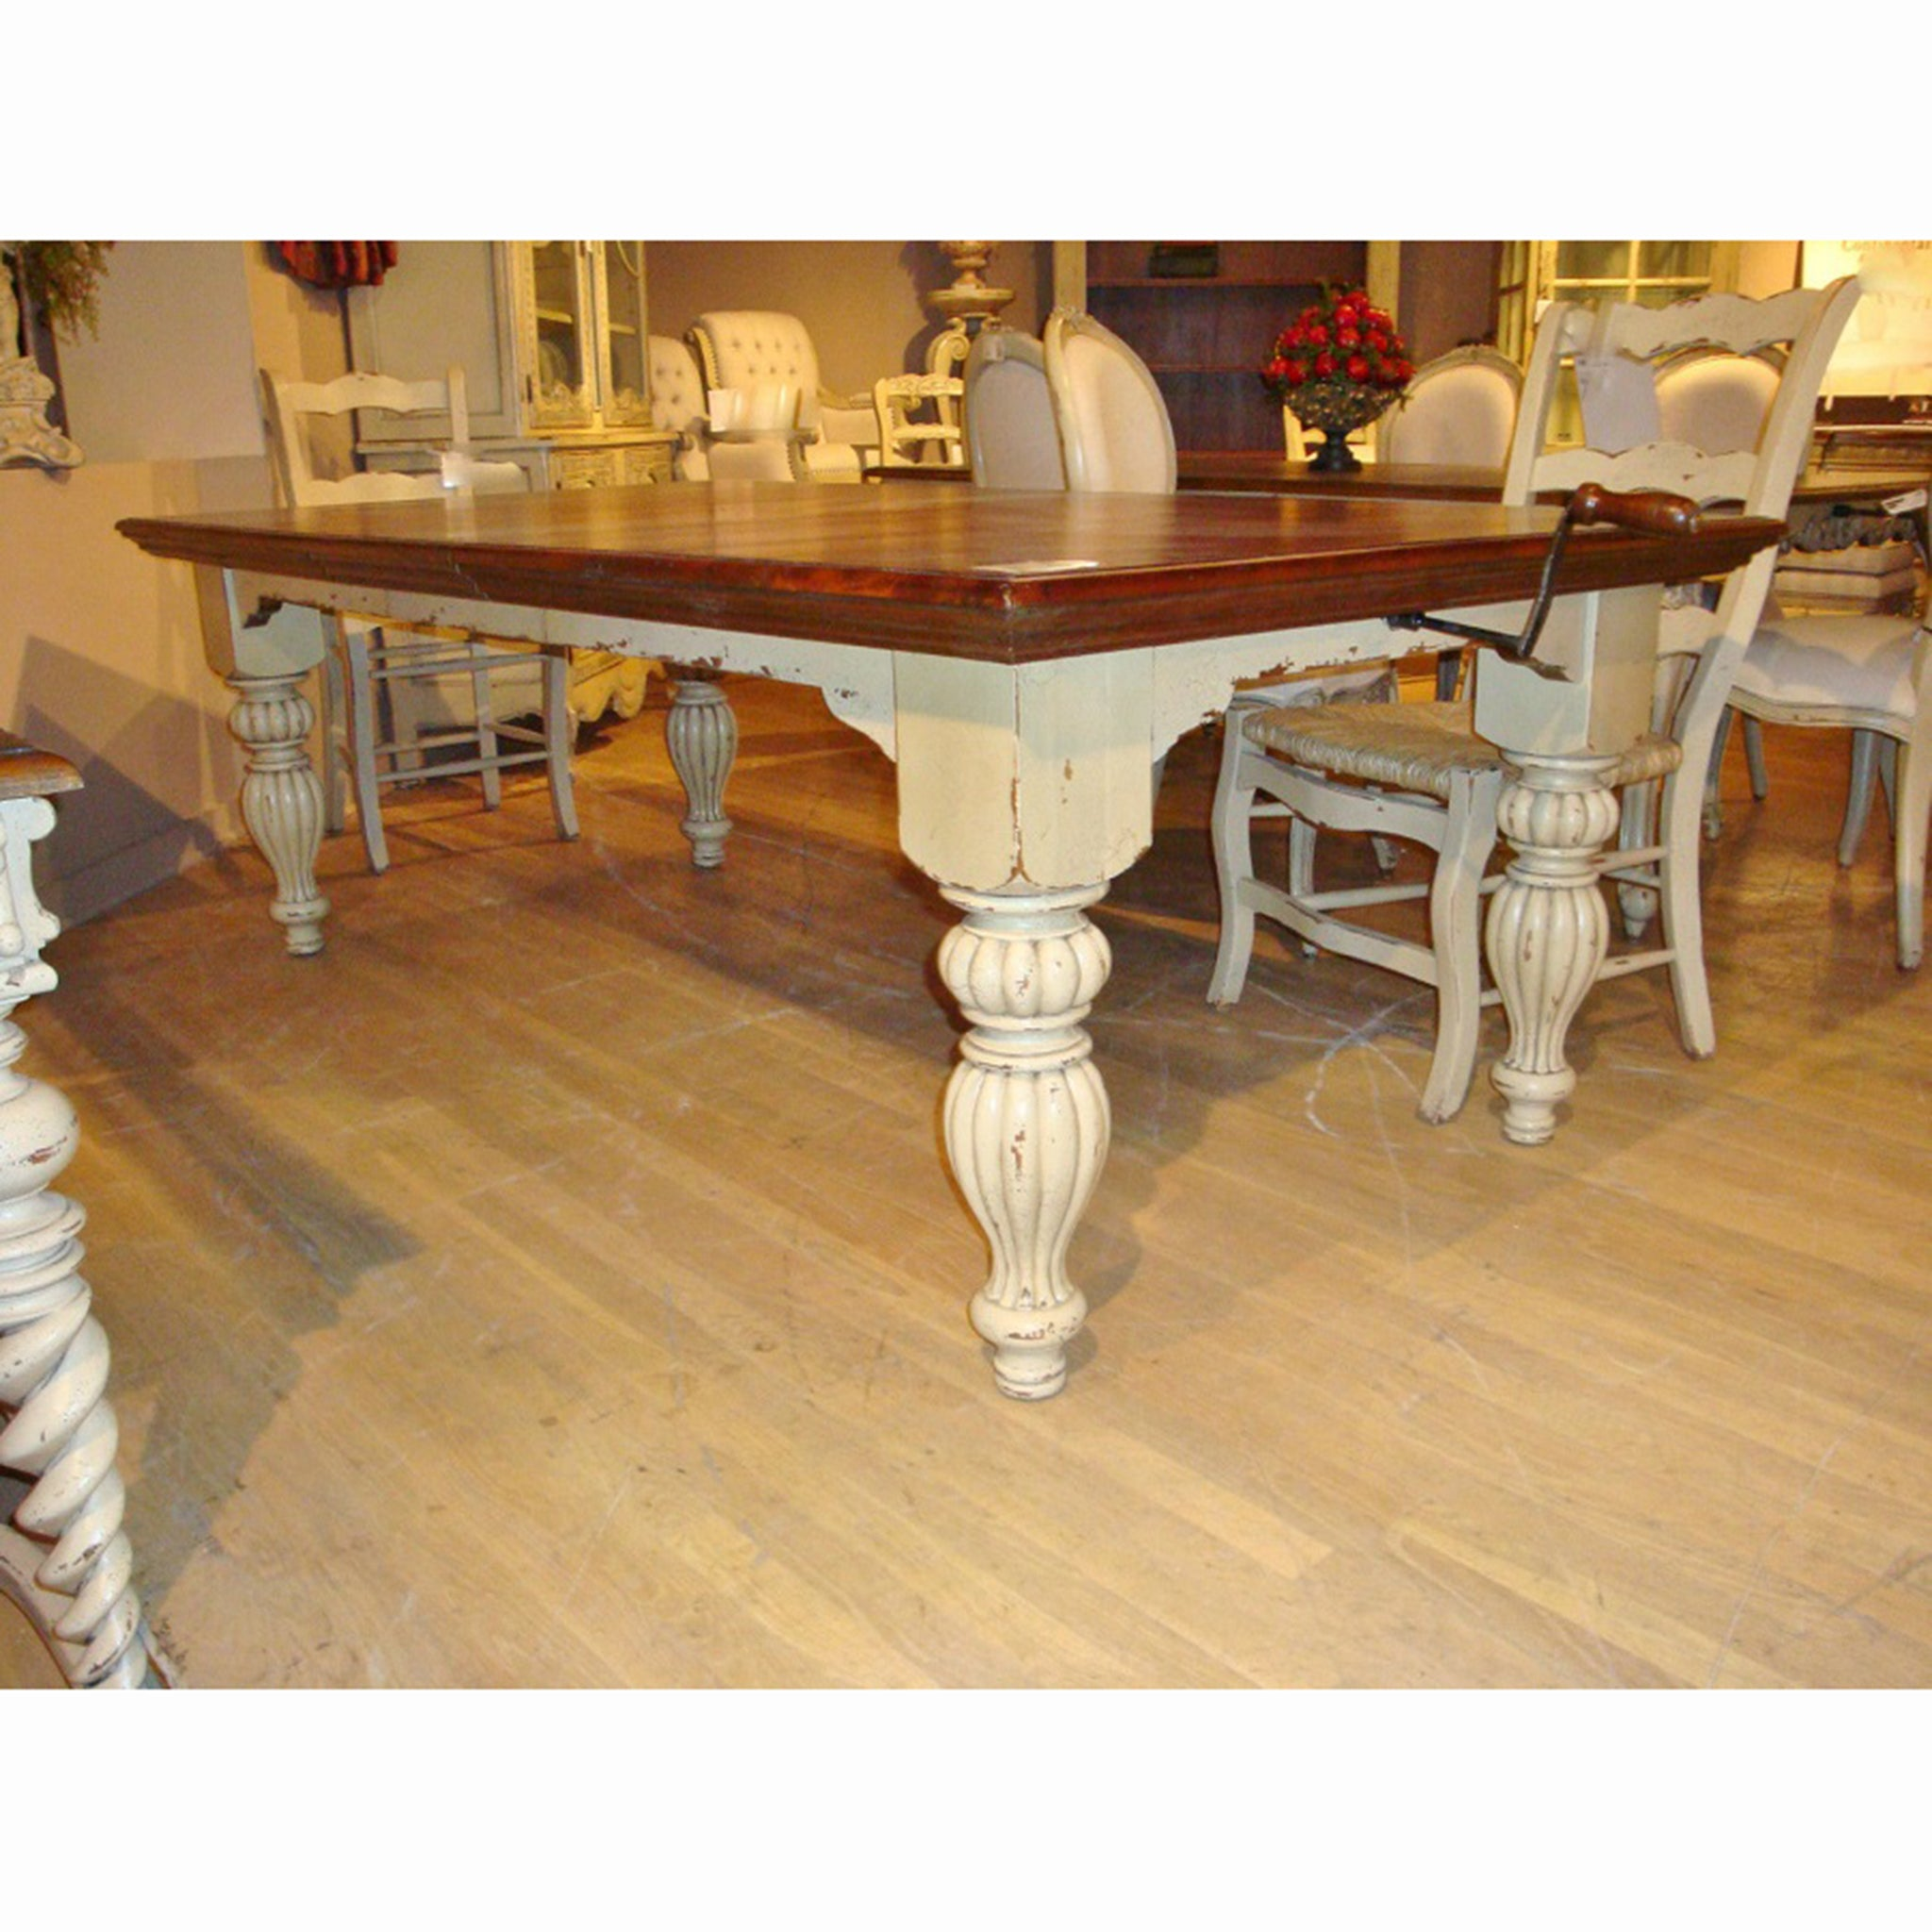 Sophia Farmhouse Distressed Parchment Dining Table - Furniture on Main